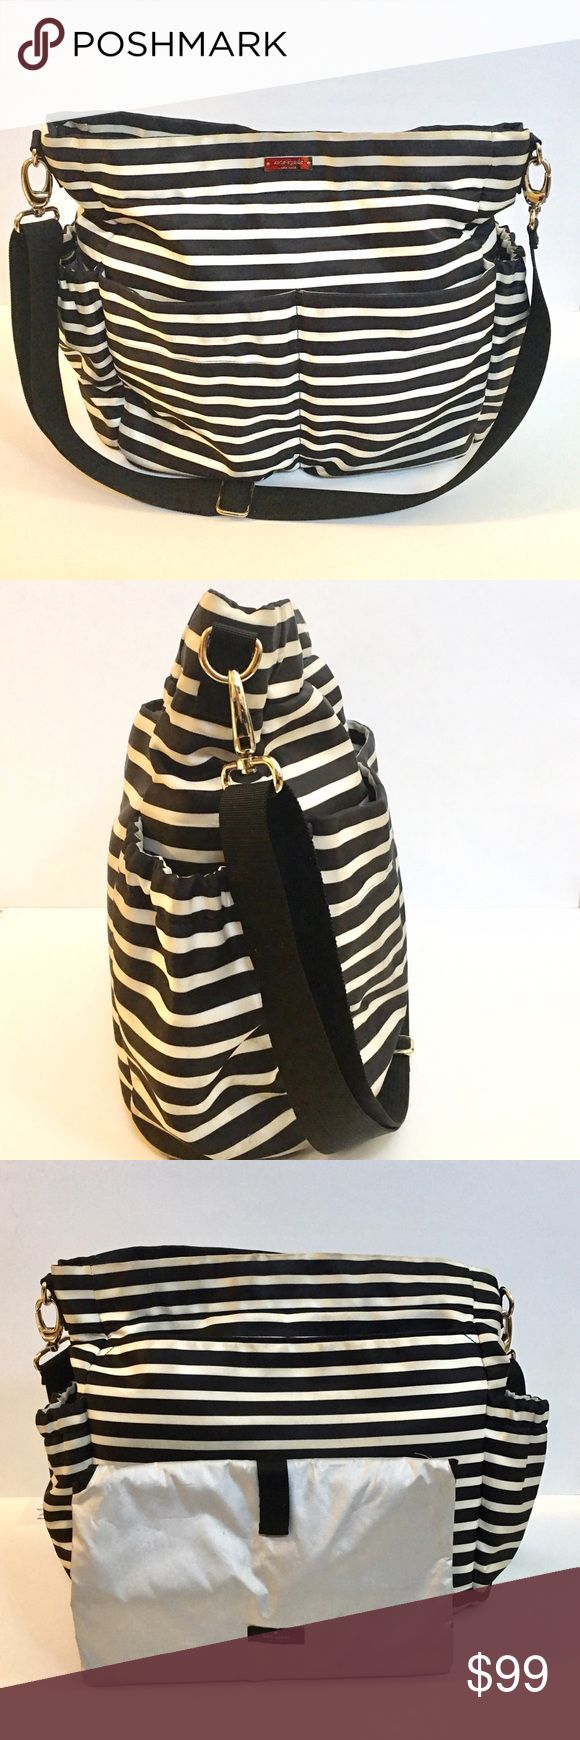 Kate Spade Holland Walk Diaper Bag Nylon black and white stripe Kate Spade diaper bag with full size changing pad that doubles as a diaper clutch.  Stroller loops on bag and messenger style carry. 4 exterior pockets and 3 interior. Some wear and tear on white portions of the bag. Magnetic closure. kate spade Bags Crossbody Bags